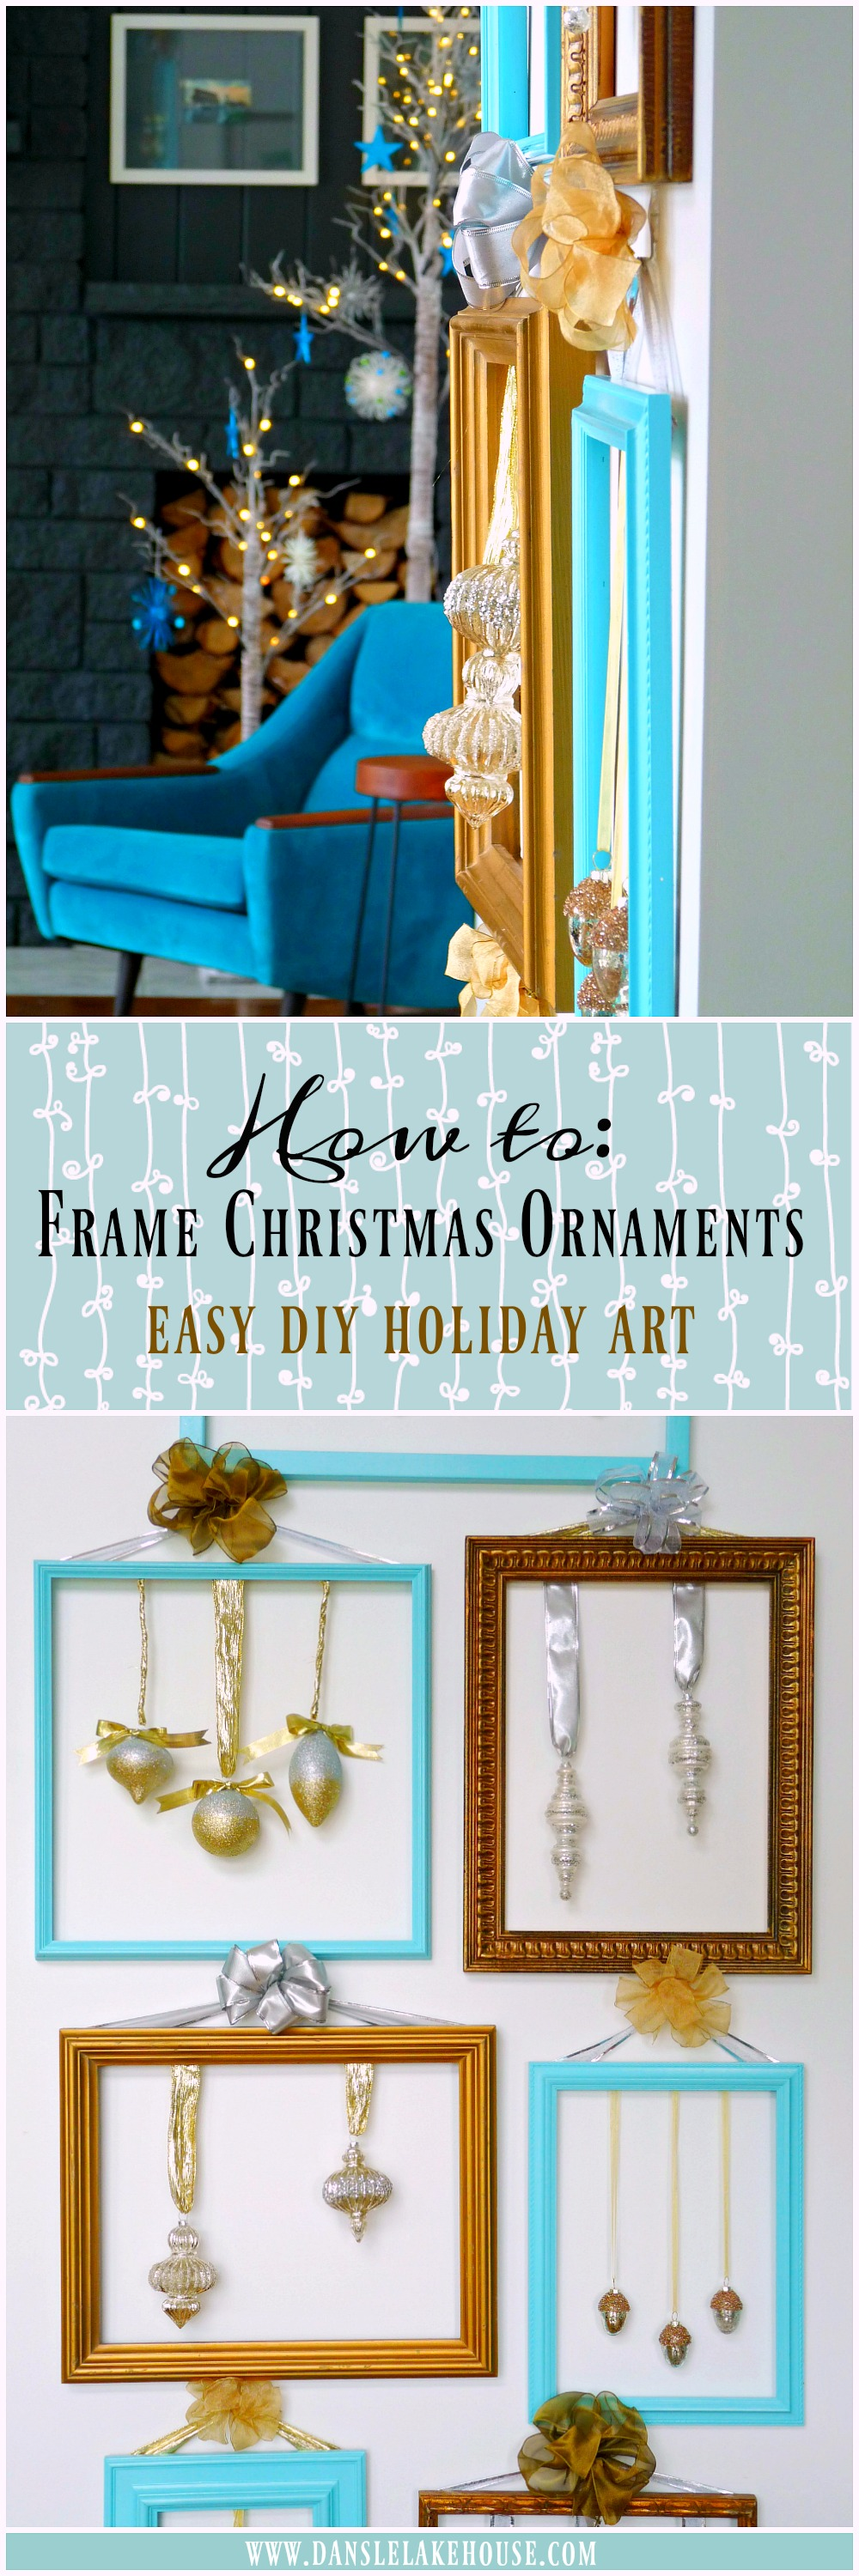 How to Frame Holiday Ornaments